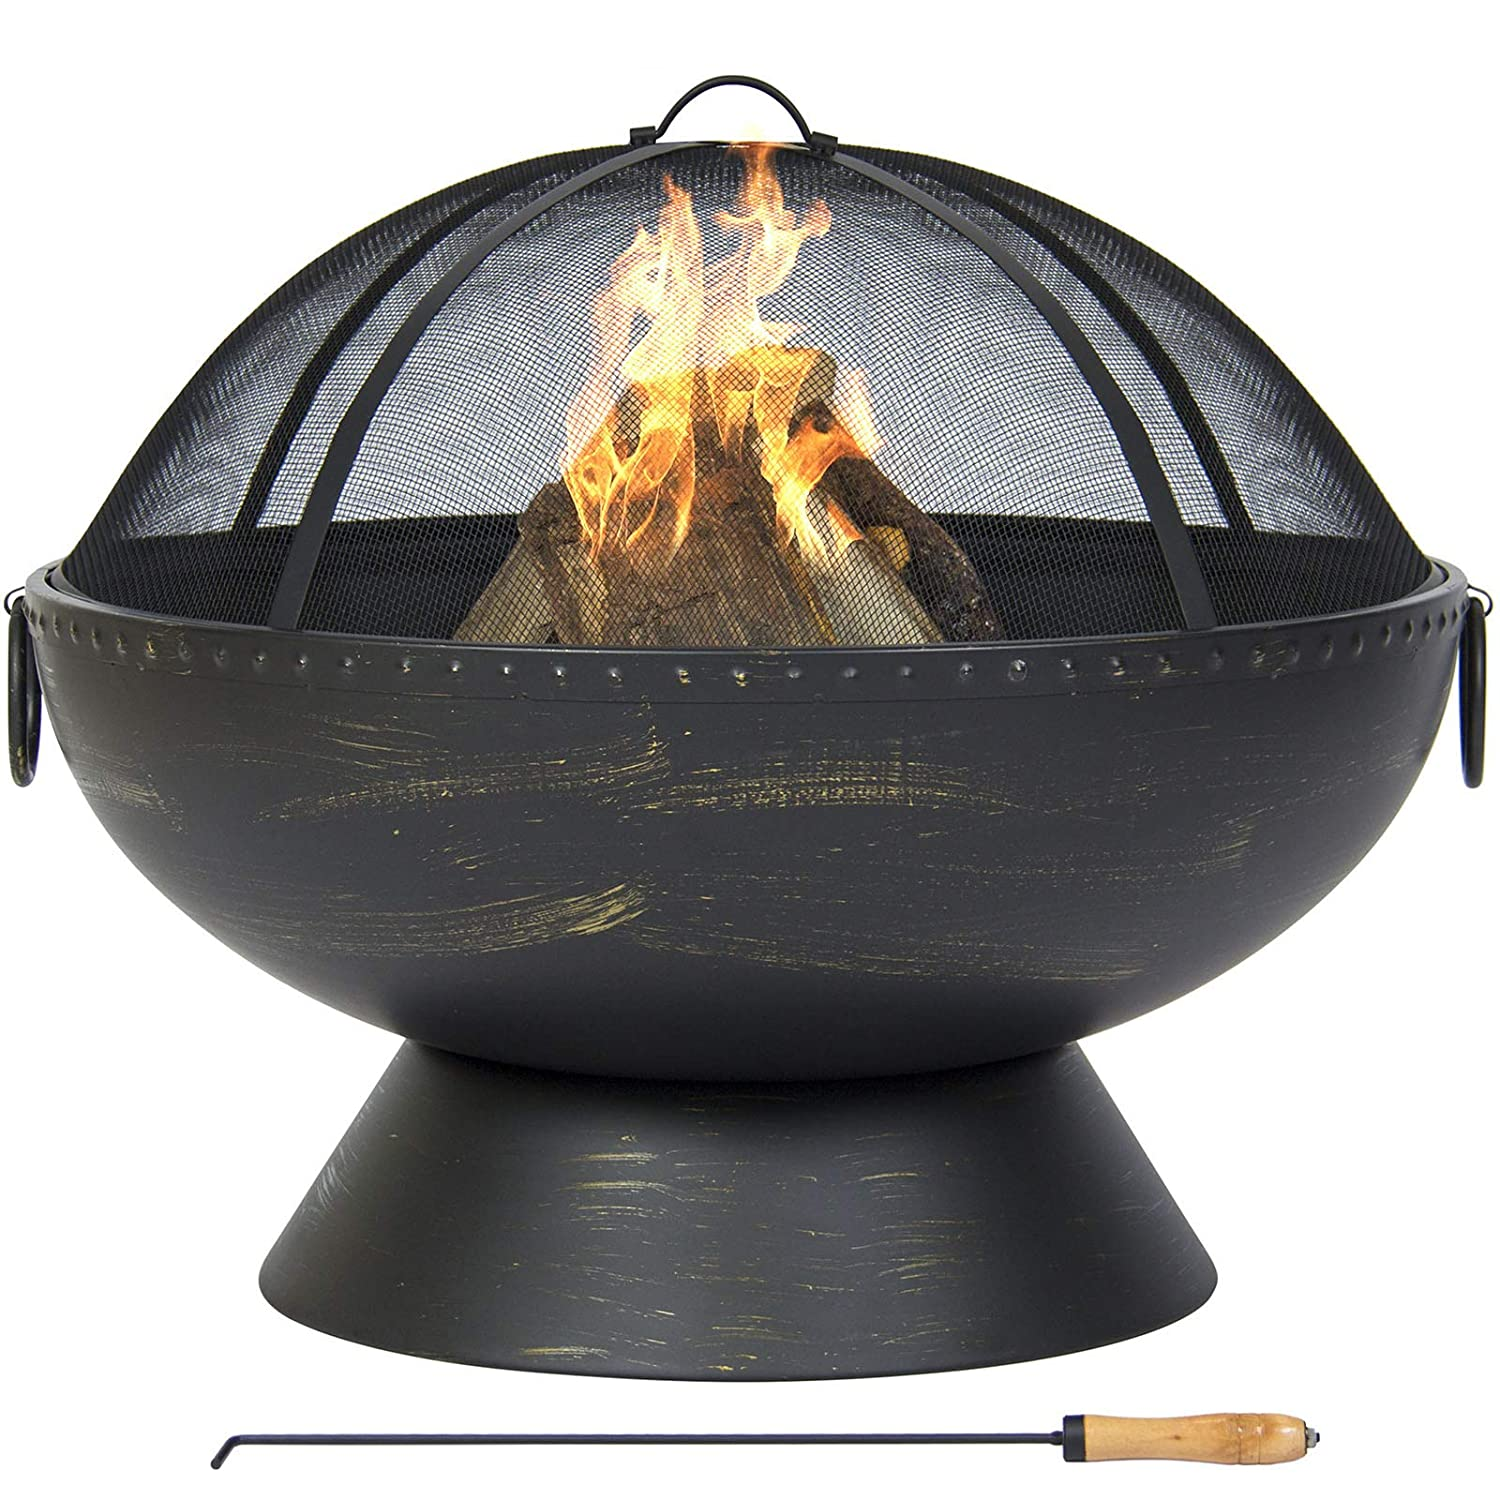 Best Choice Products Large Fire Pit Bowl With Handles, Spark Screen And Poker